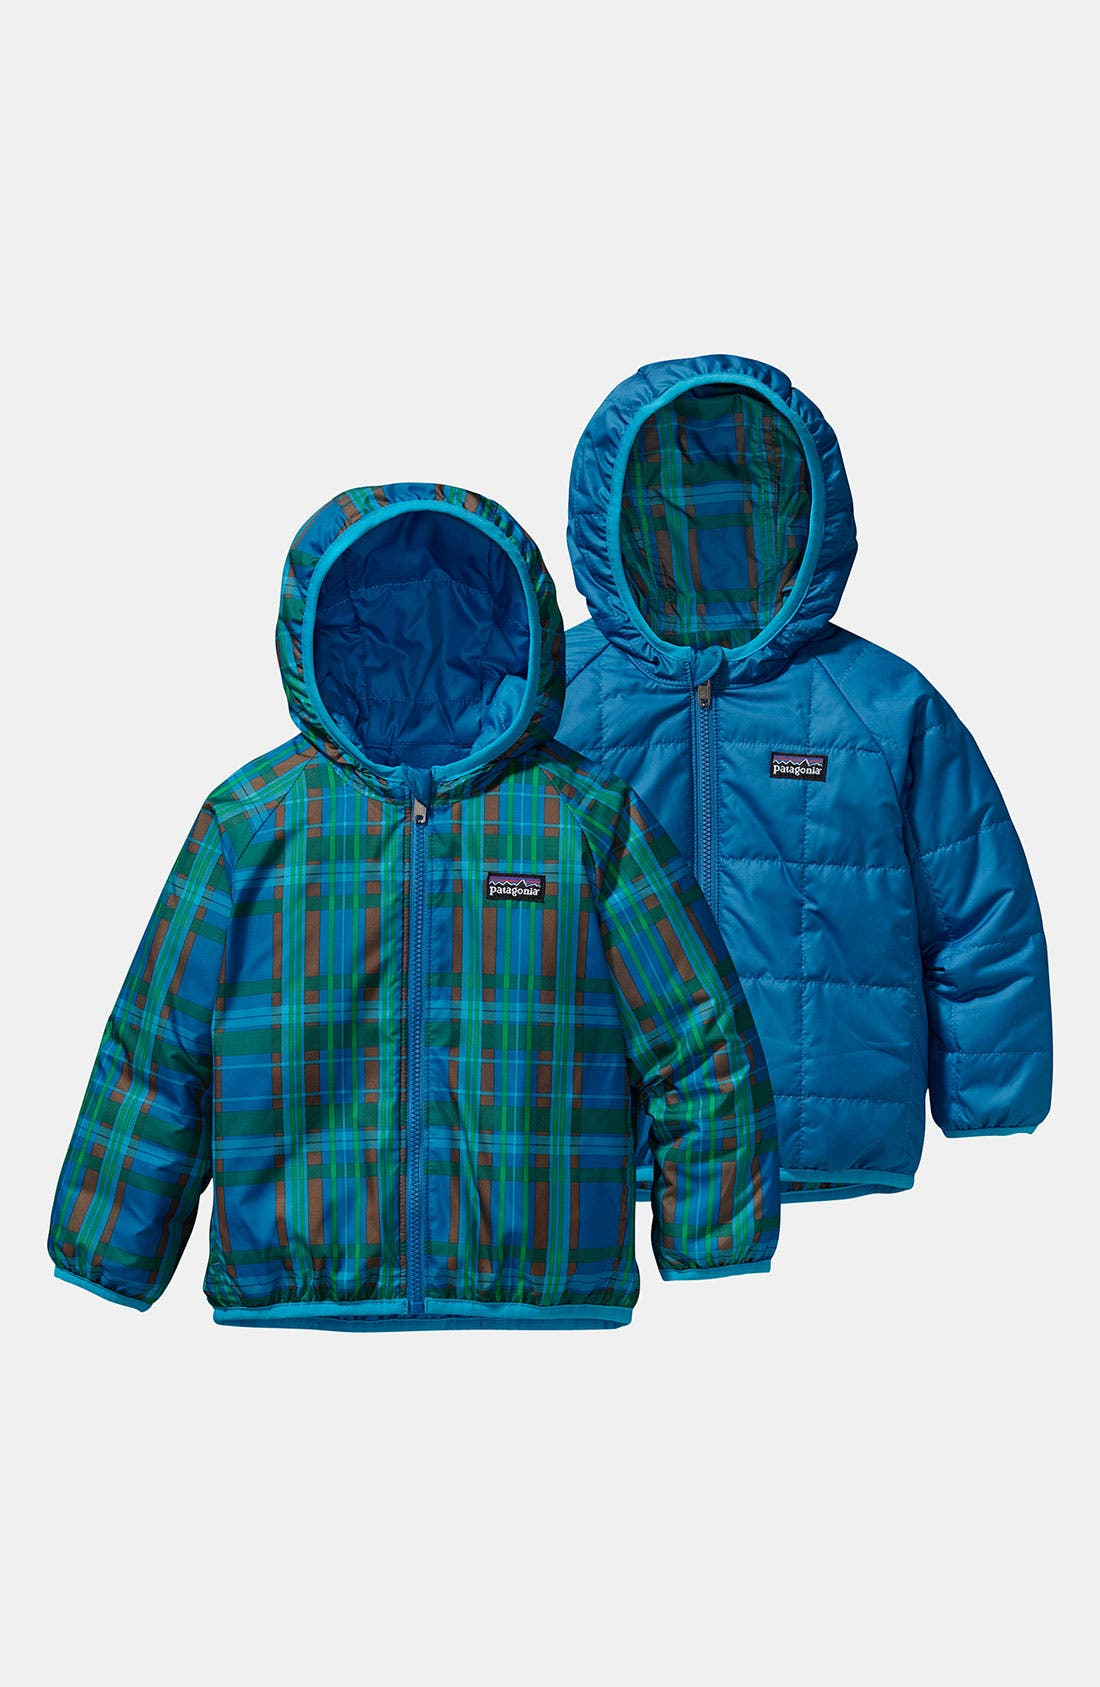 Alternate Image 1 Selected - Patagonia Reversible Jacket (Toddler)